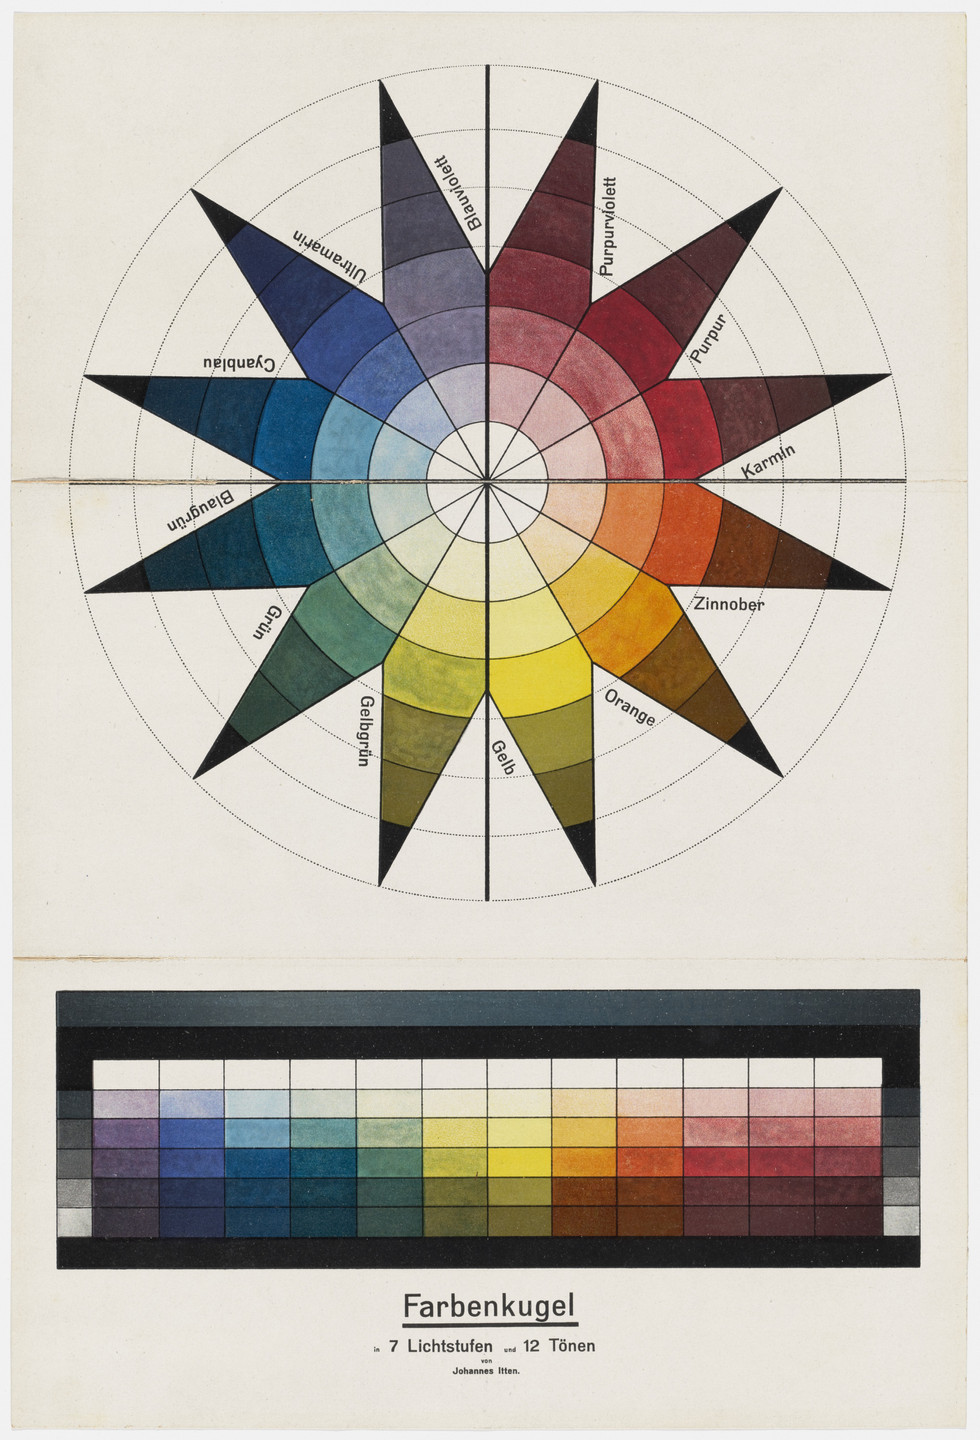 Johannes Itten. Color Sphere in 7 Light Values and 12 Tones (Farbenkugel in 7 Lichtstufen und 12 Tönen). 1921